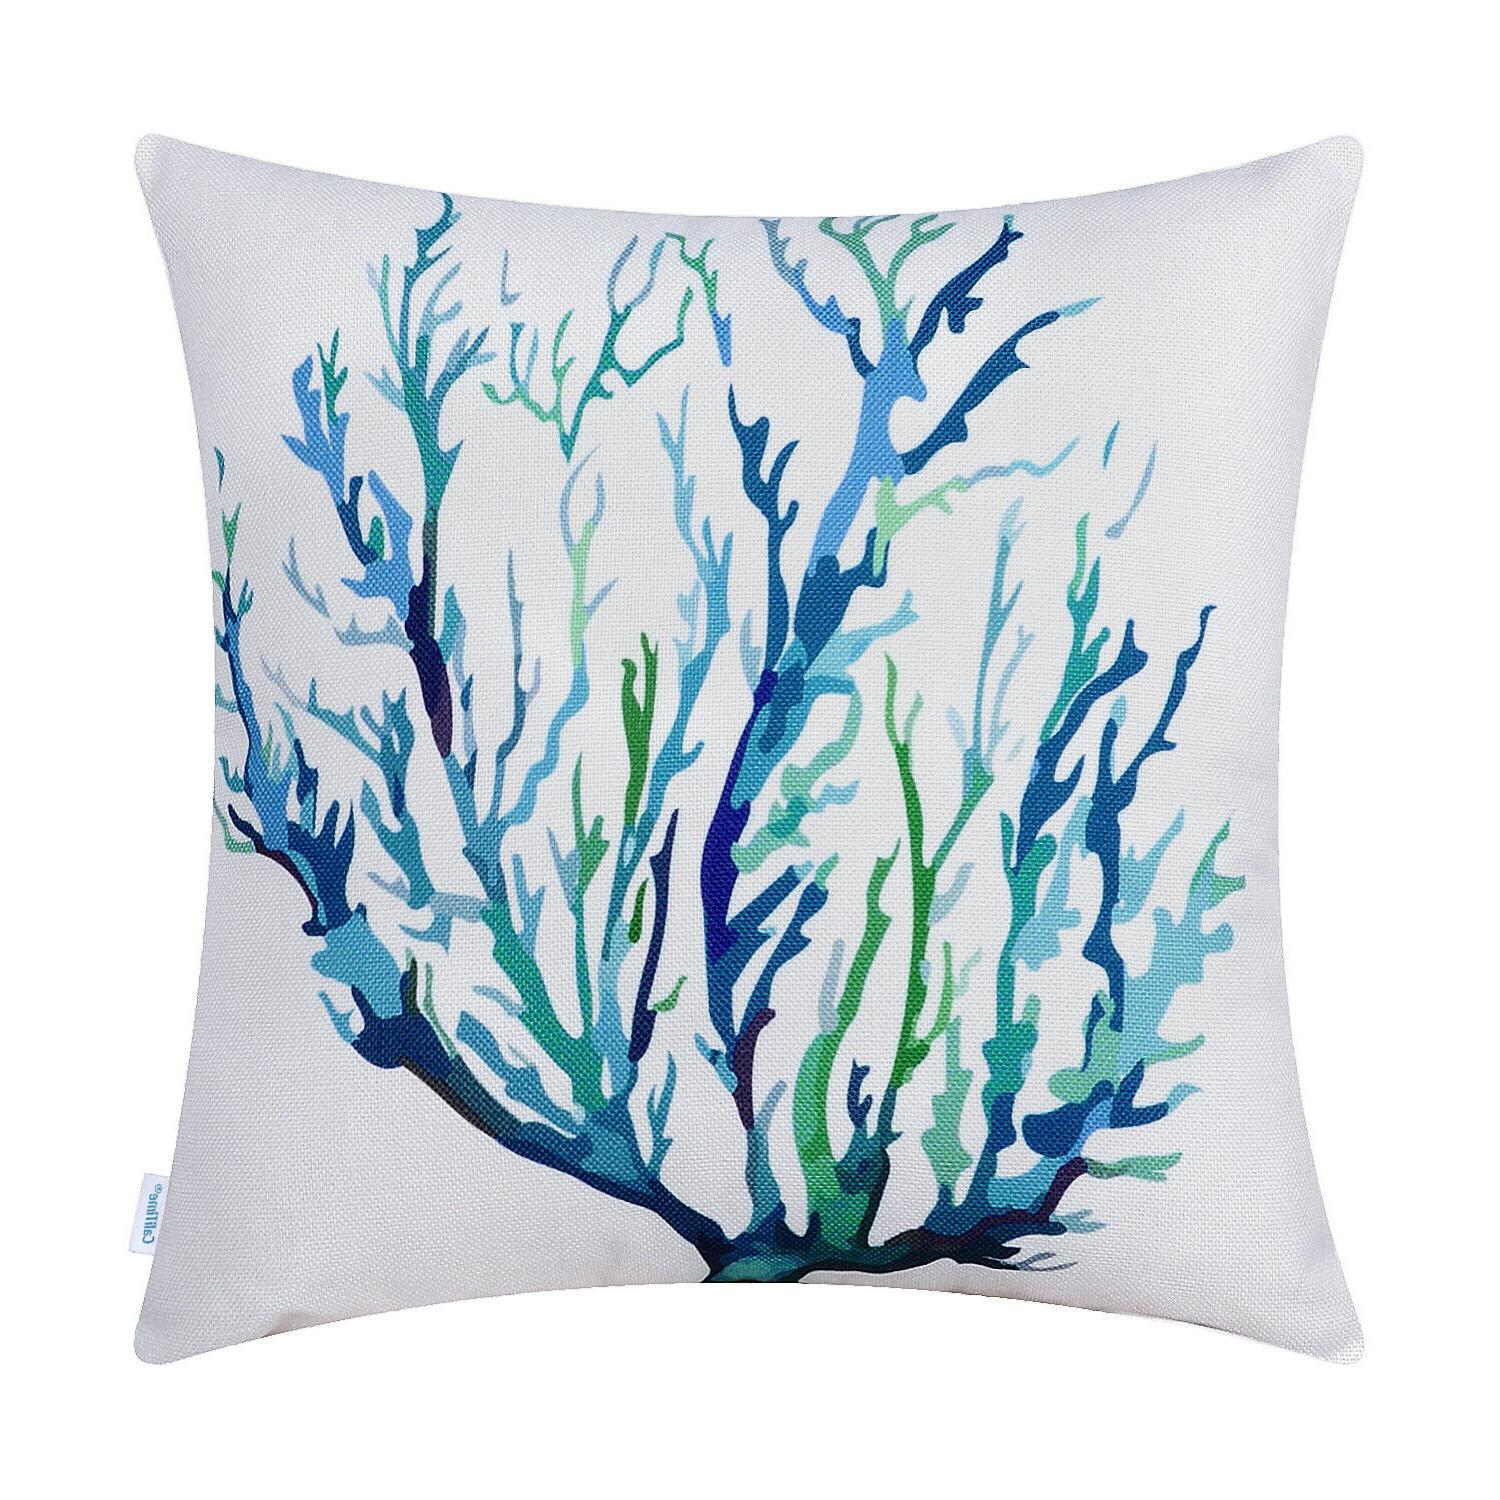 CaliTime Covers Pillows Aquarelle Painting